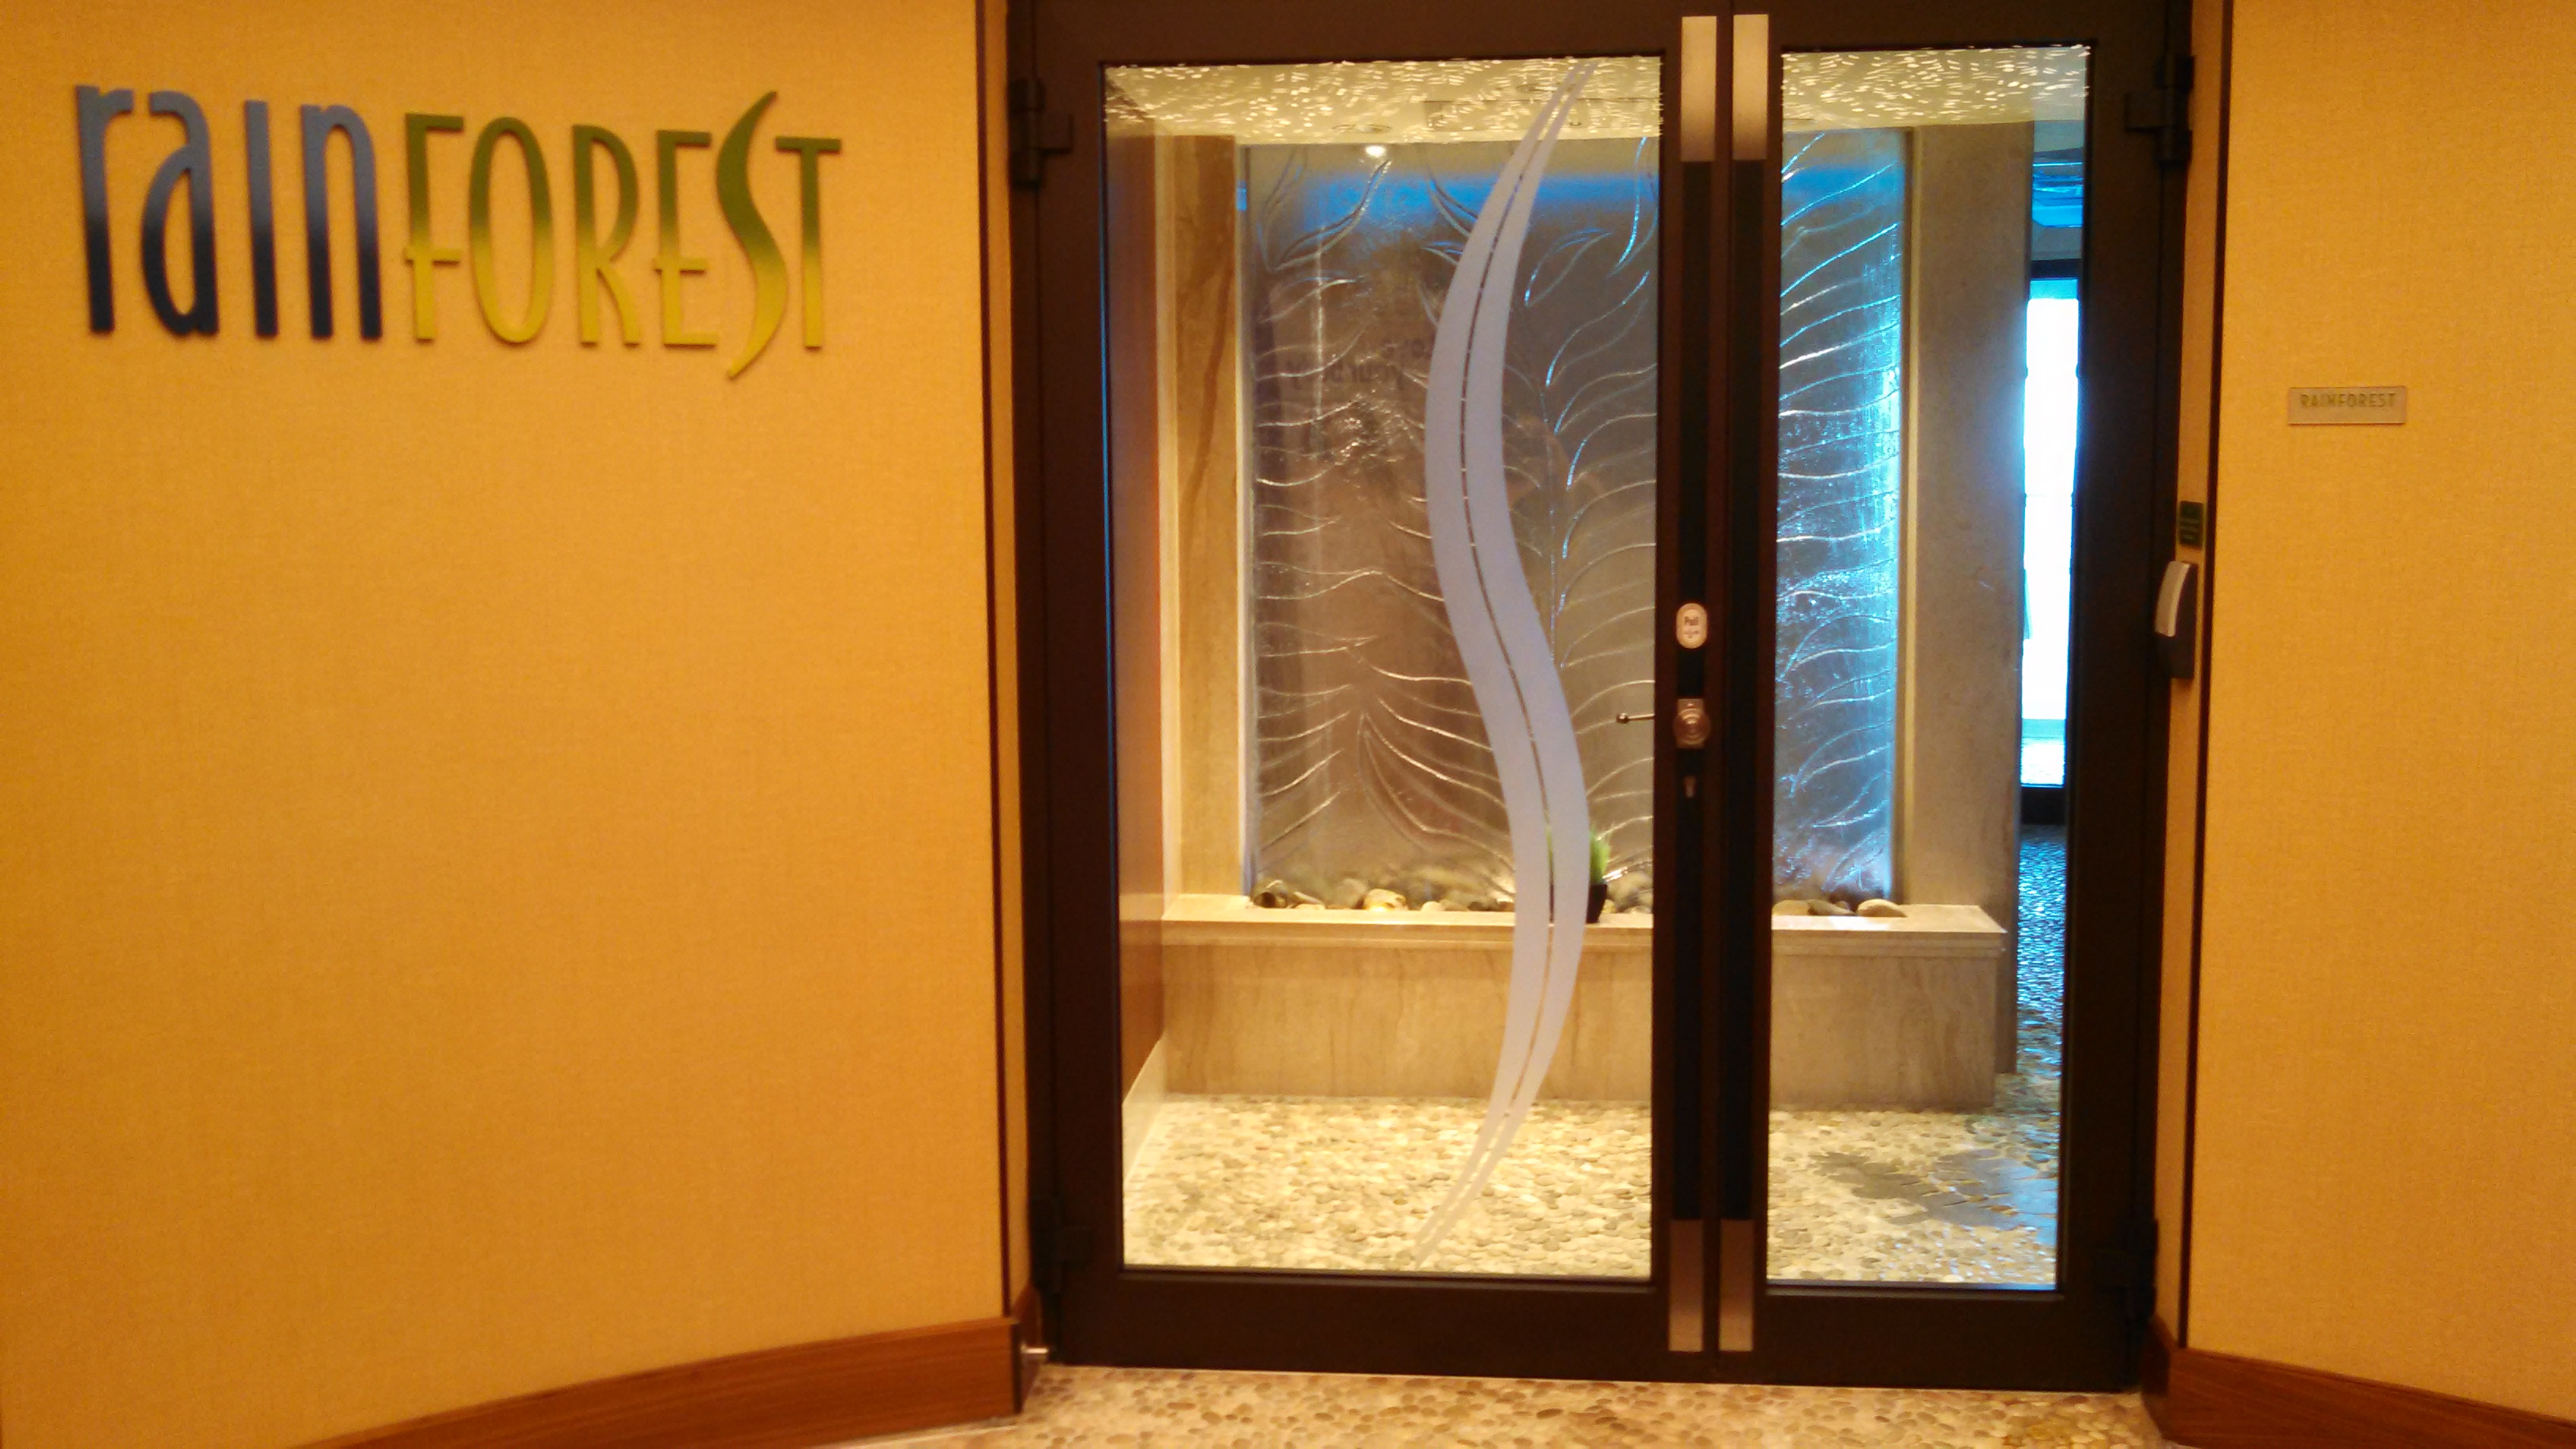 Disney Dream Cruise Rainforest Spa